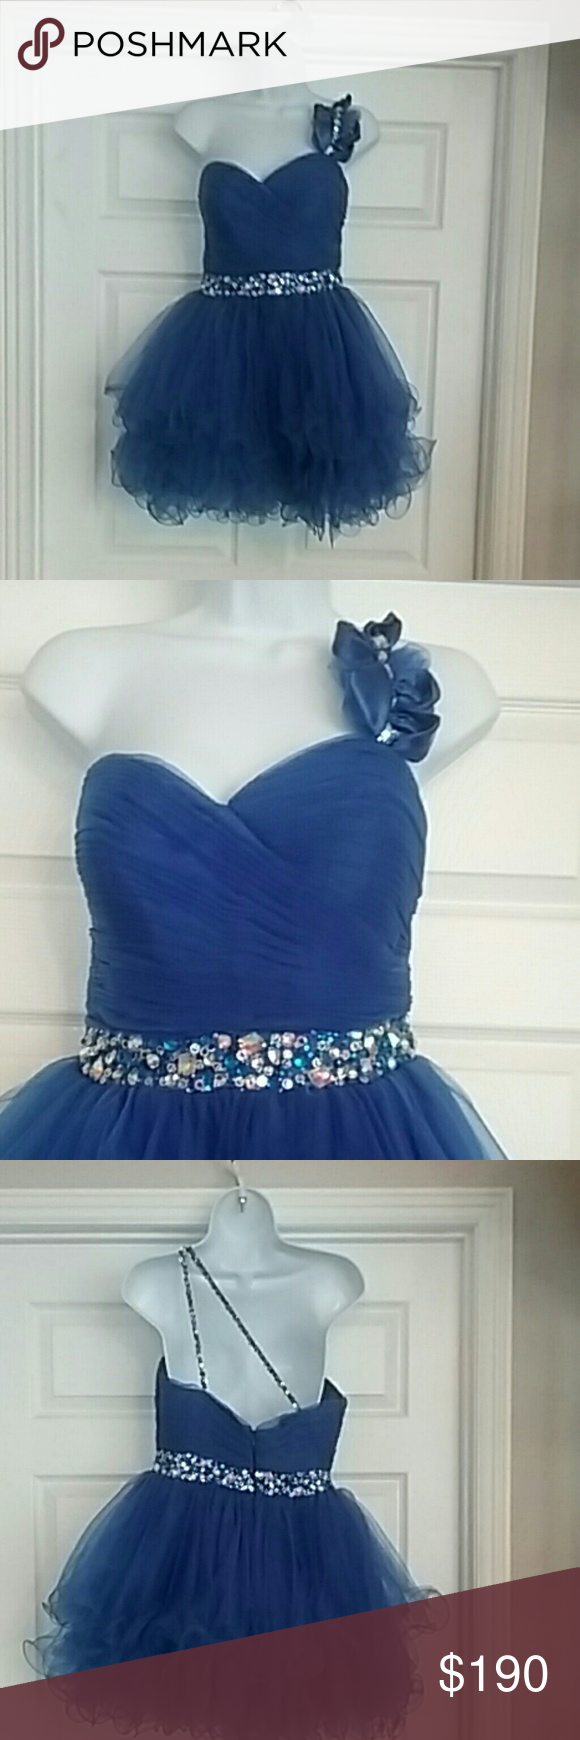 May queen size homecoming dress pinterest